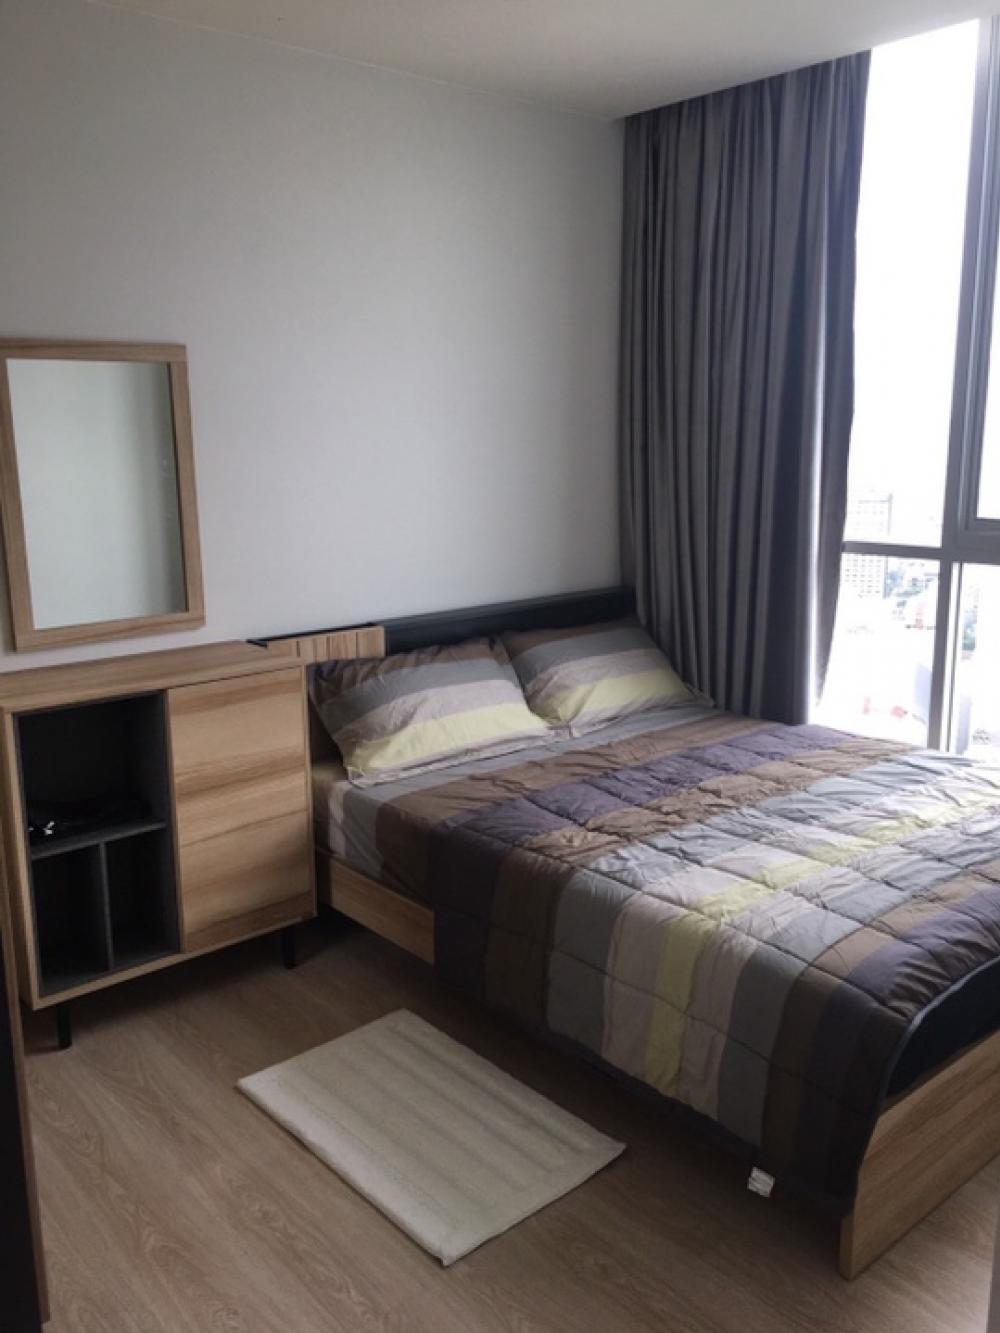 For SaleCondoRatchadapisek, Huaikwang, Suttisan : For sale Noble revolve ratchada   type 1 bed 1 bath   size 25 sq.m    floor 30   fully furnished   price 3.69 mb   contact porto 061-7304445  Line : i-portofc